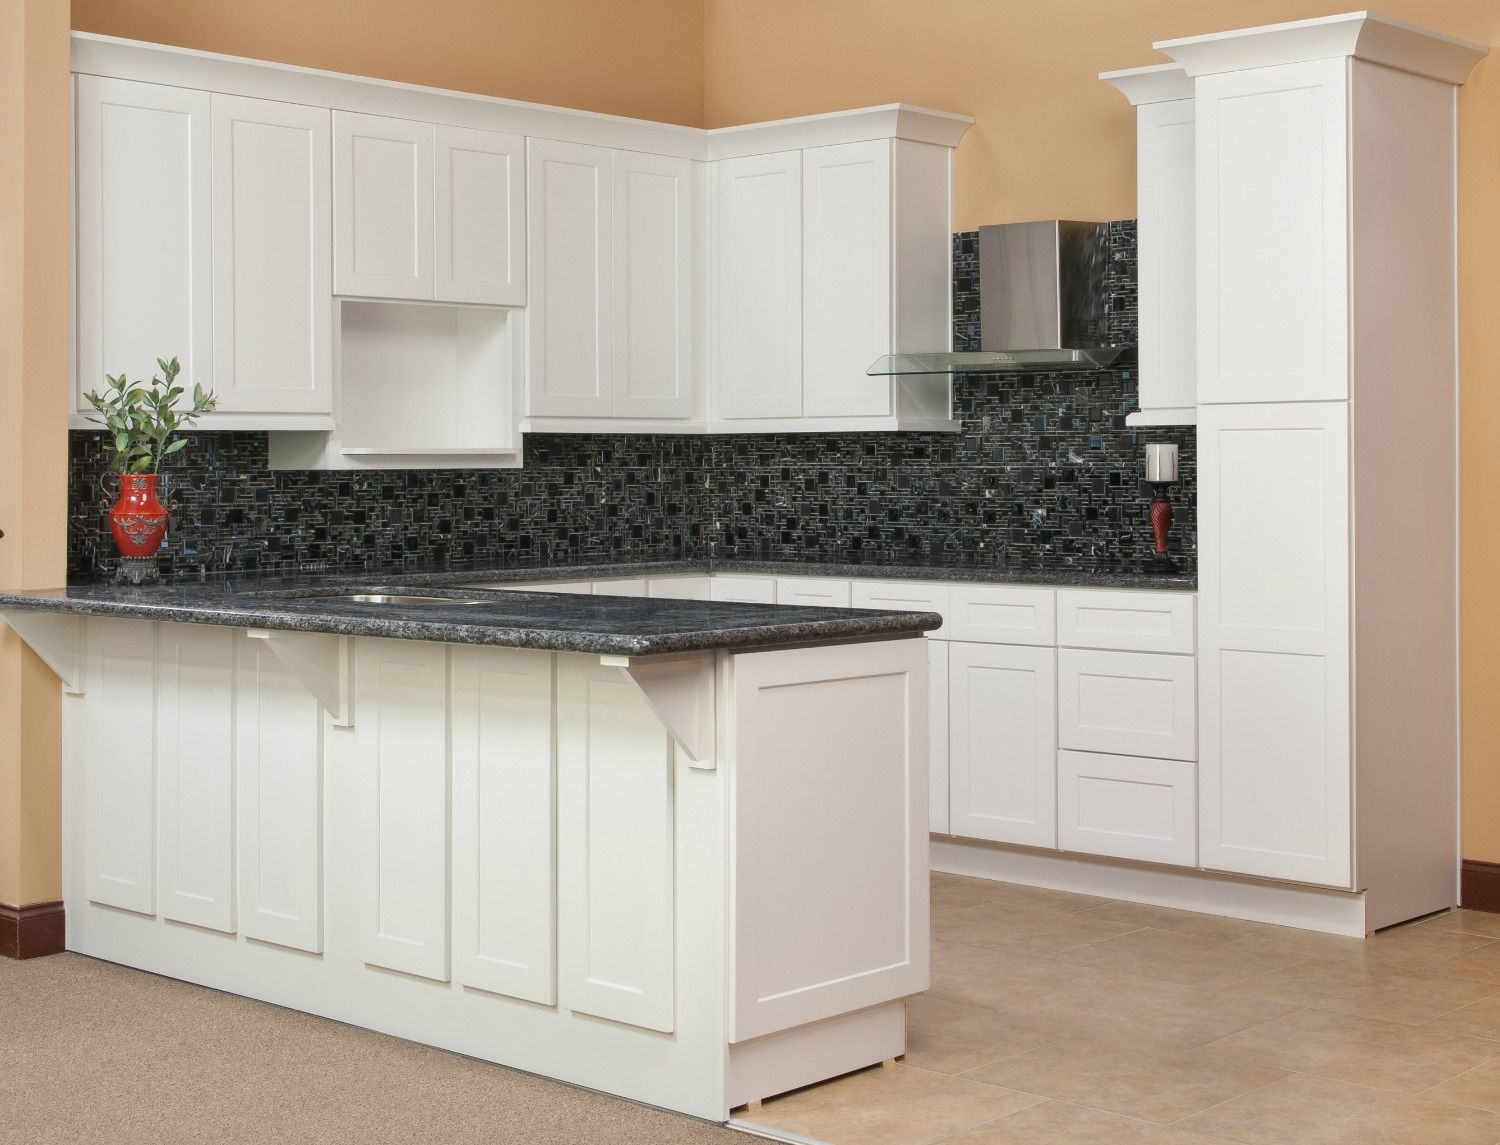 Kitchen of the day brilliant white shaker rta kitchen for Shaker kitchen cabinets